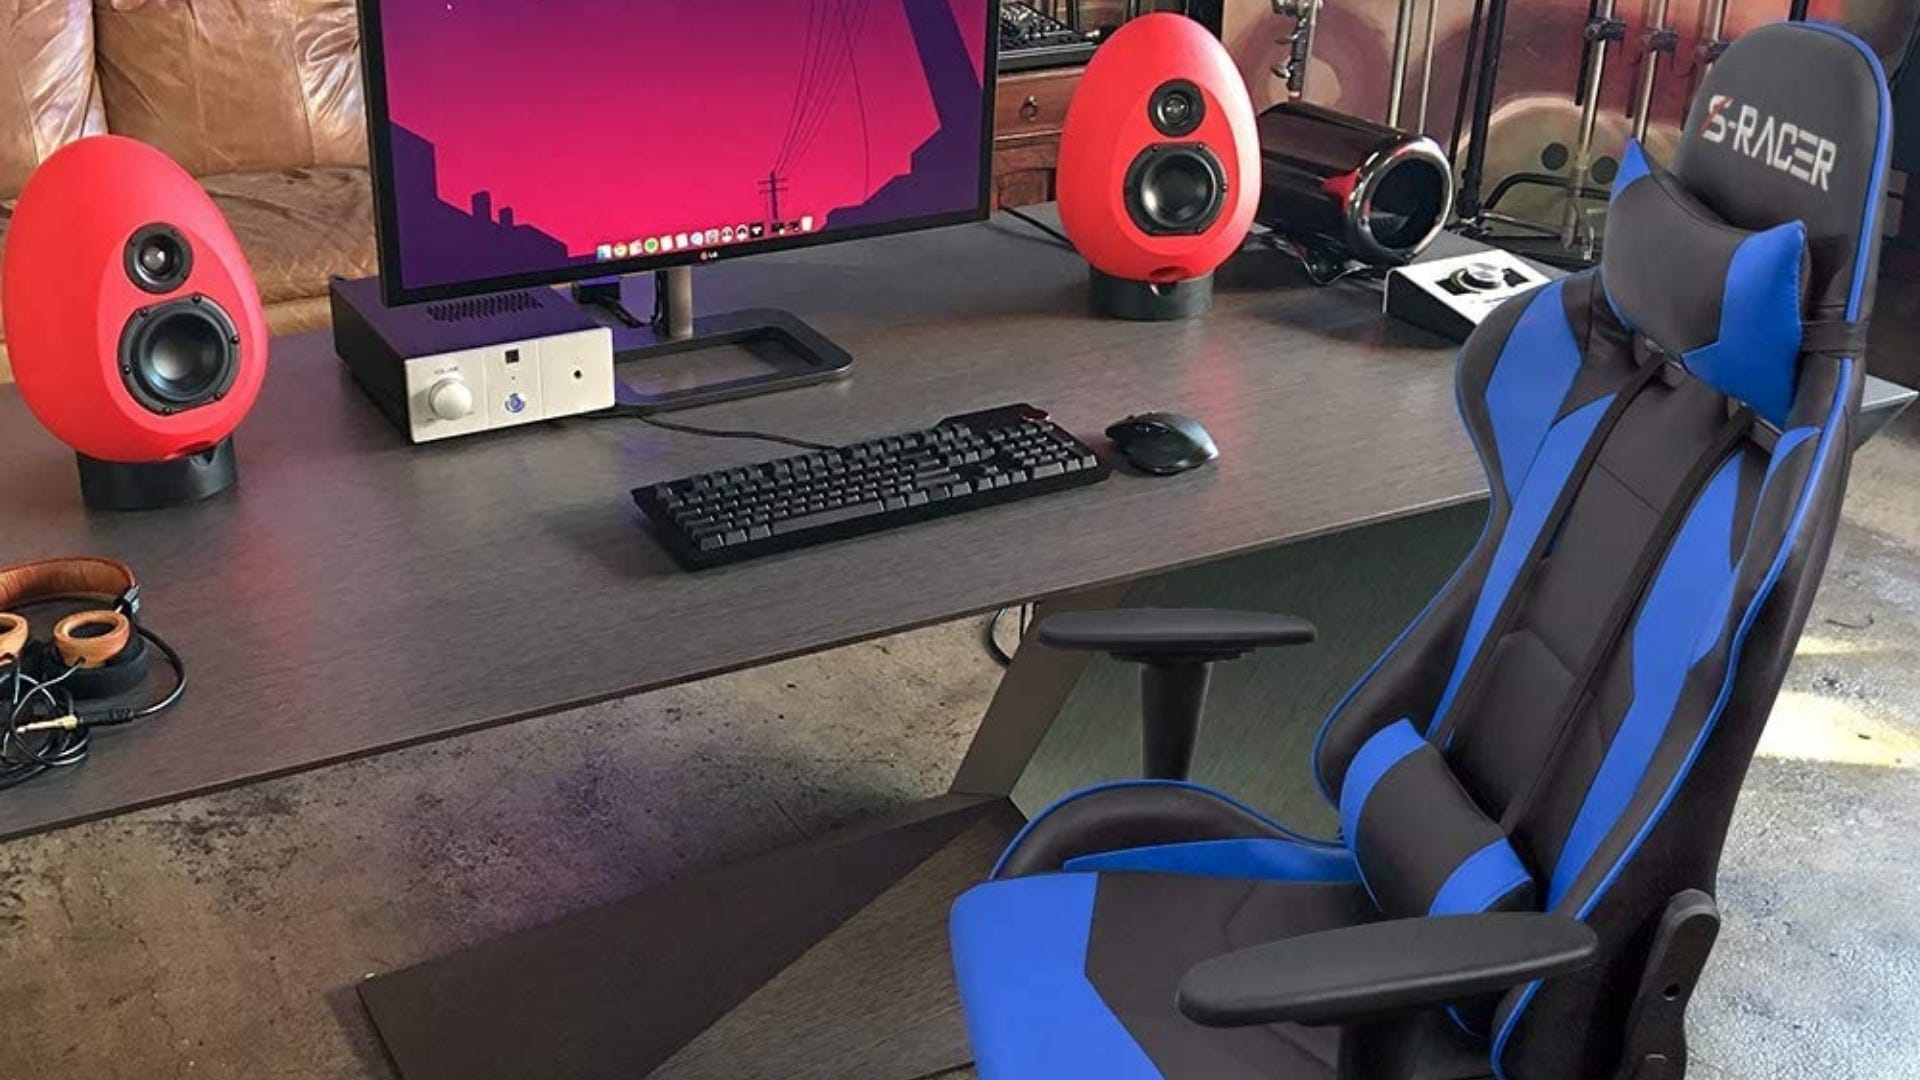 Gaming chair next to computer.